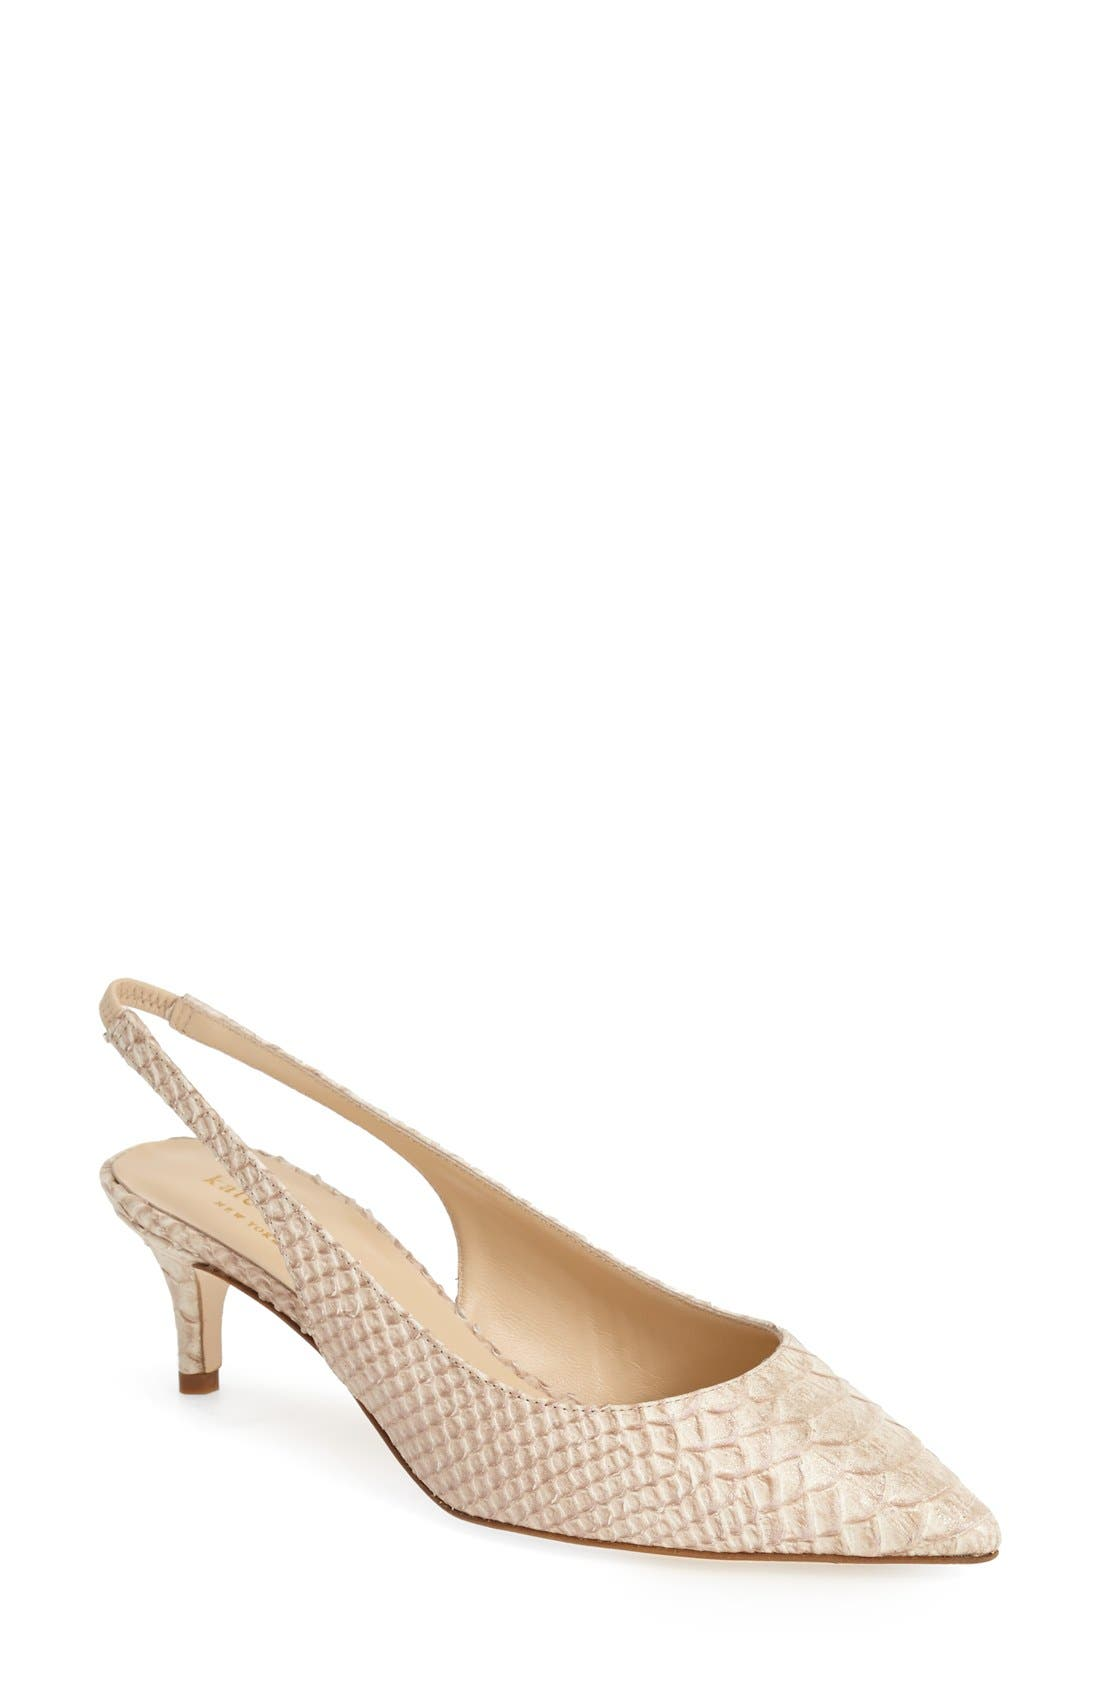 Alternate Image 1 Selected - kate spade new york 'saia' slingback pump